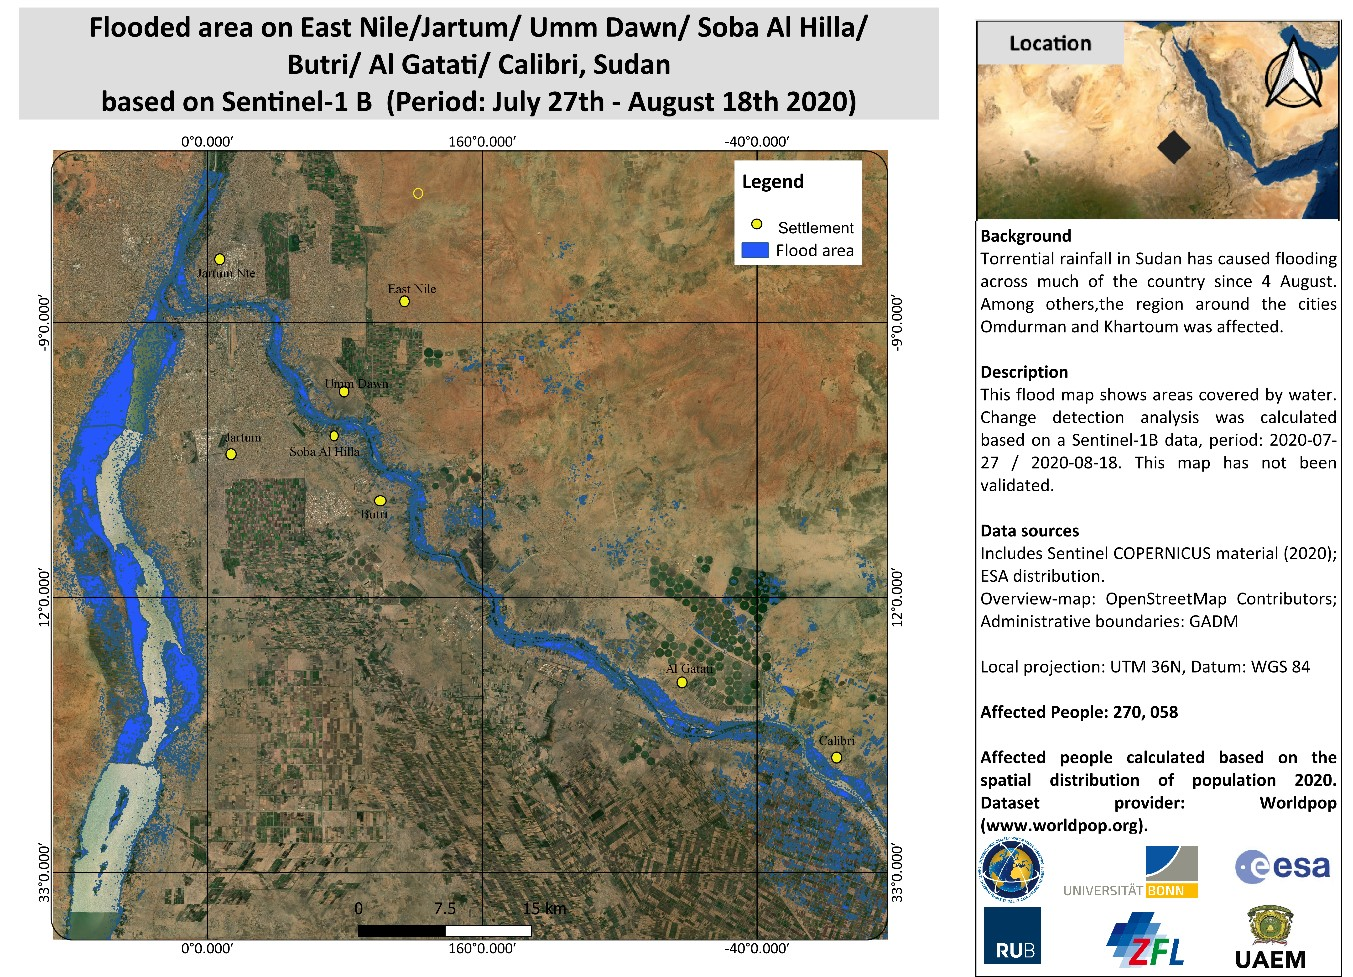 Figure 3: Flooded Area in affected region with Sentinel-1B Images between 27 July and 18 August, 2020. Raw imagery provided by ESA via the International Charter. Map produced by RUB, ZFL and UAEM. Available at: https://disasterscharter.org/image/journal/article.jpg?img_id=7032887&t=1598600800100.